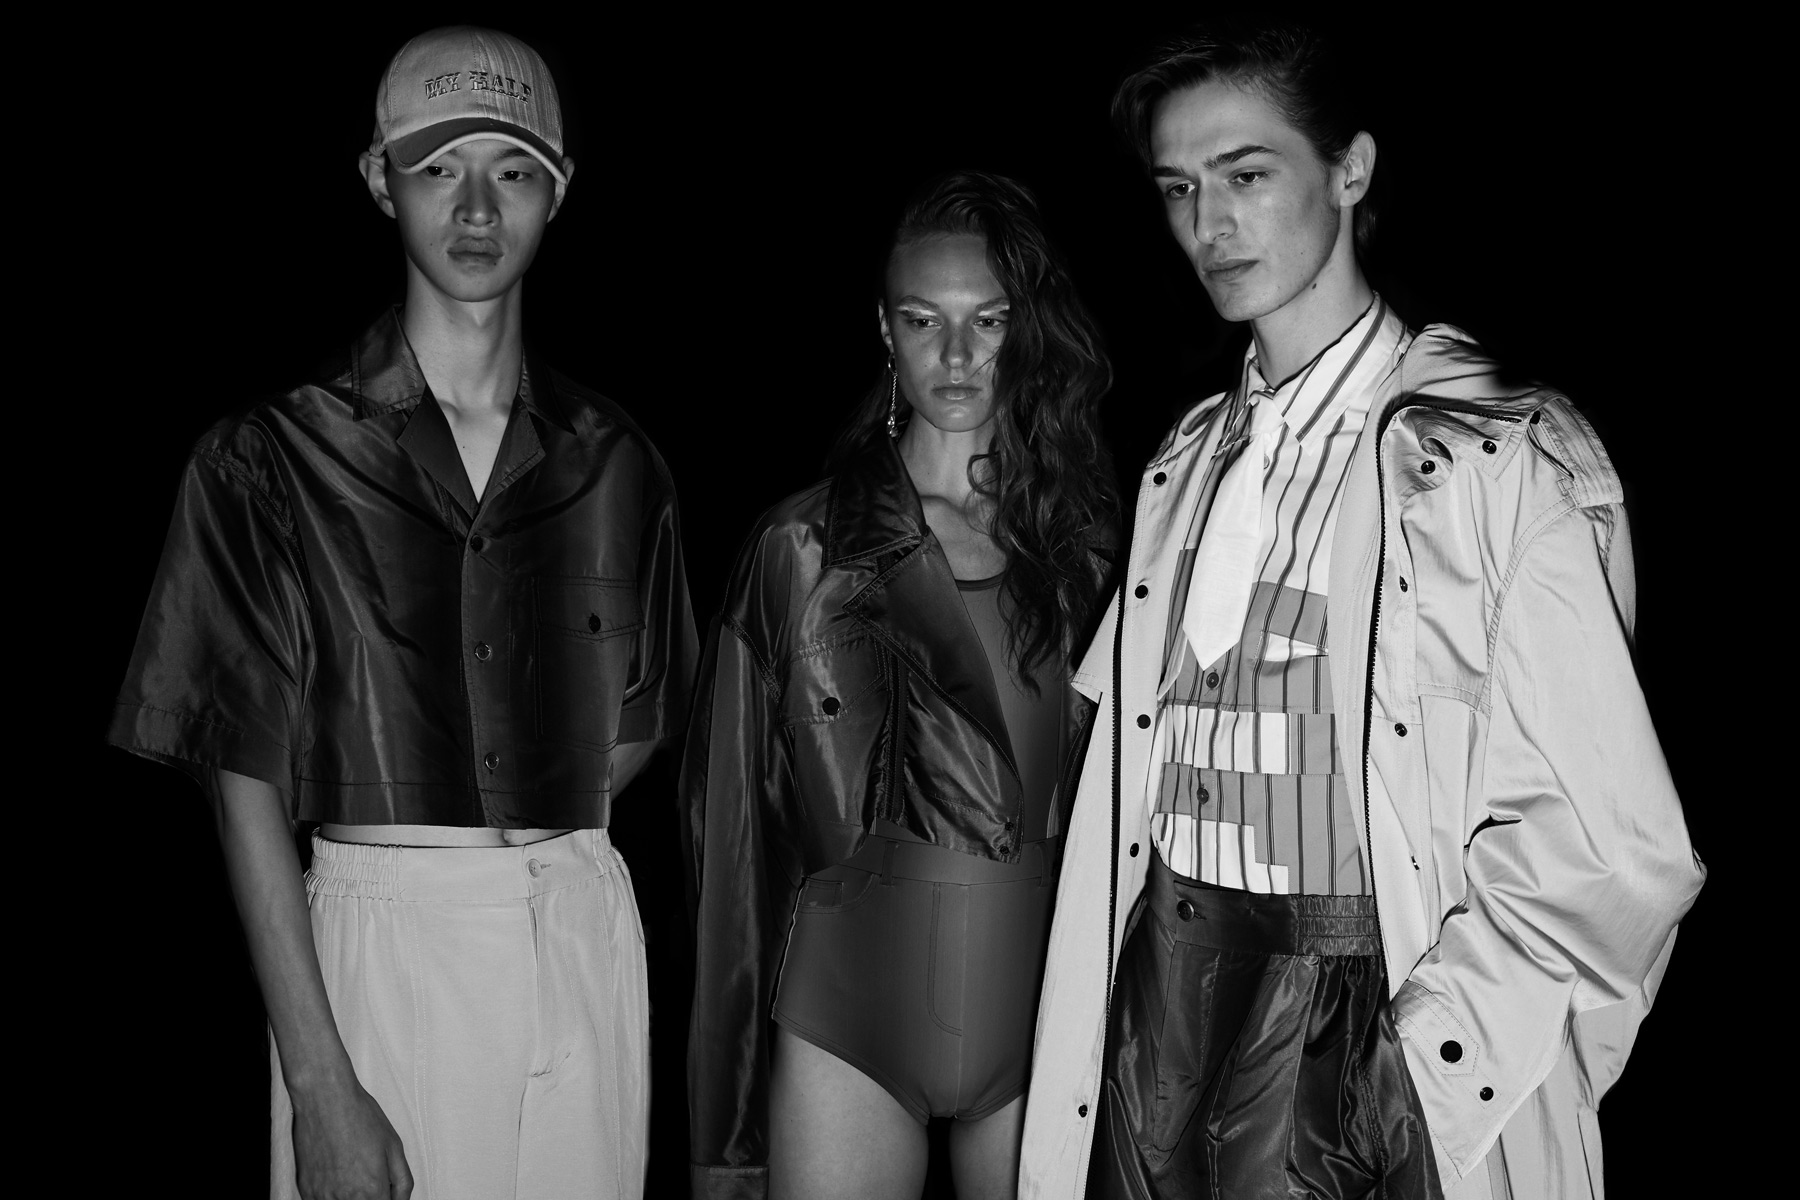 Models pose backstage for photographers at the Feng Chen Wang Spring 2019 show. Photographed by Alexander Thompson for Ponyboy magazine.